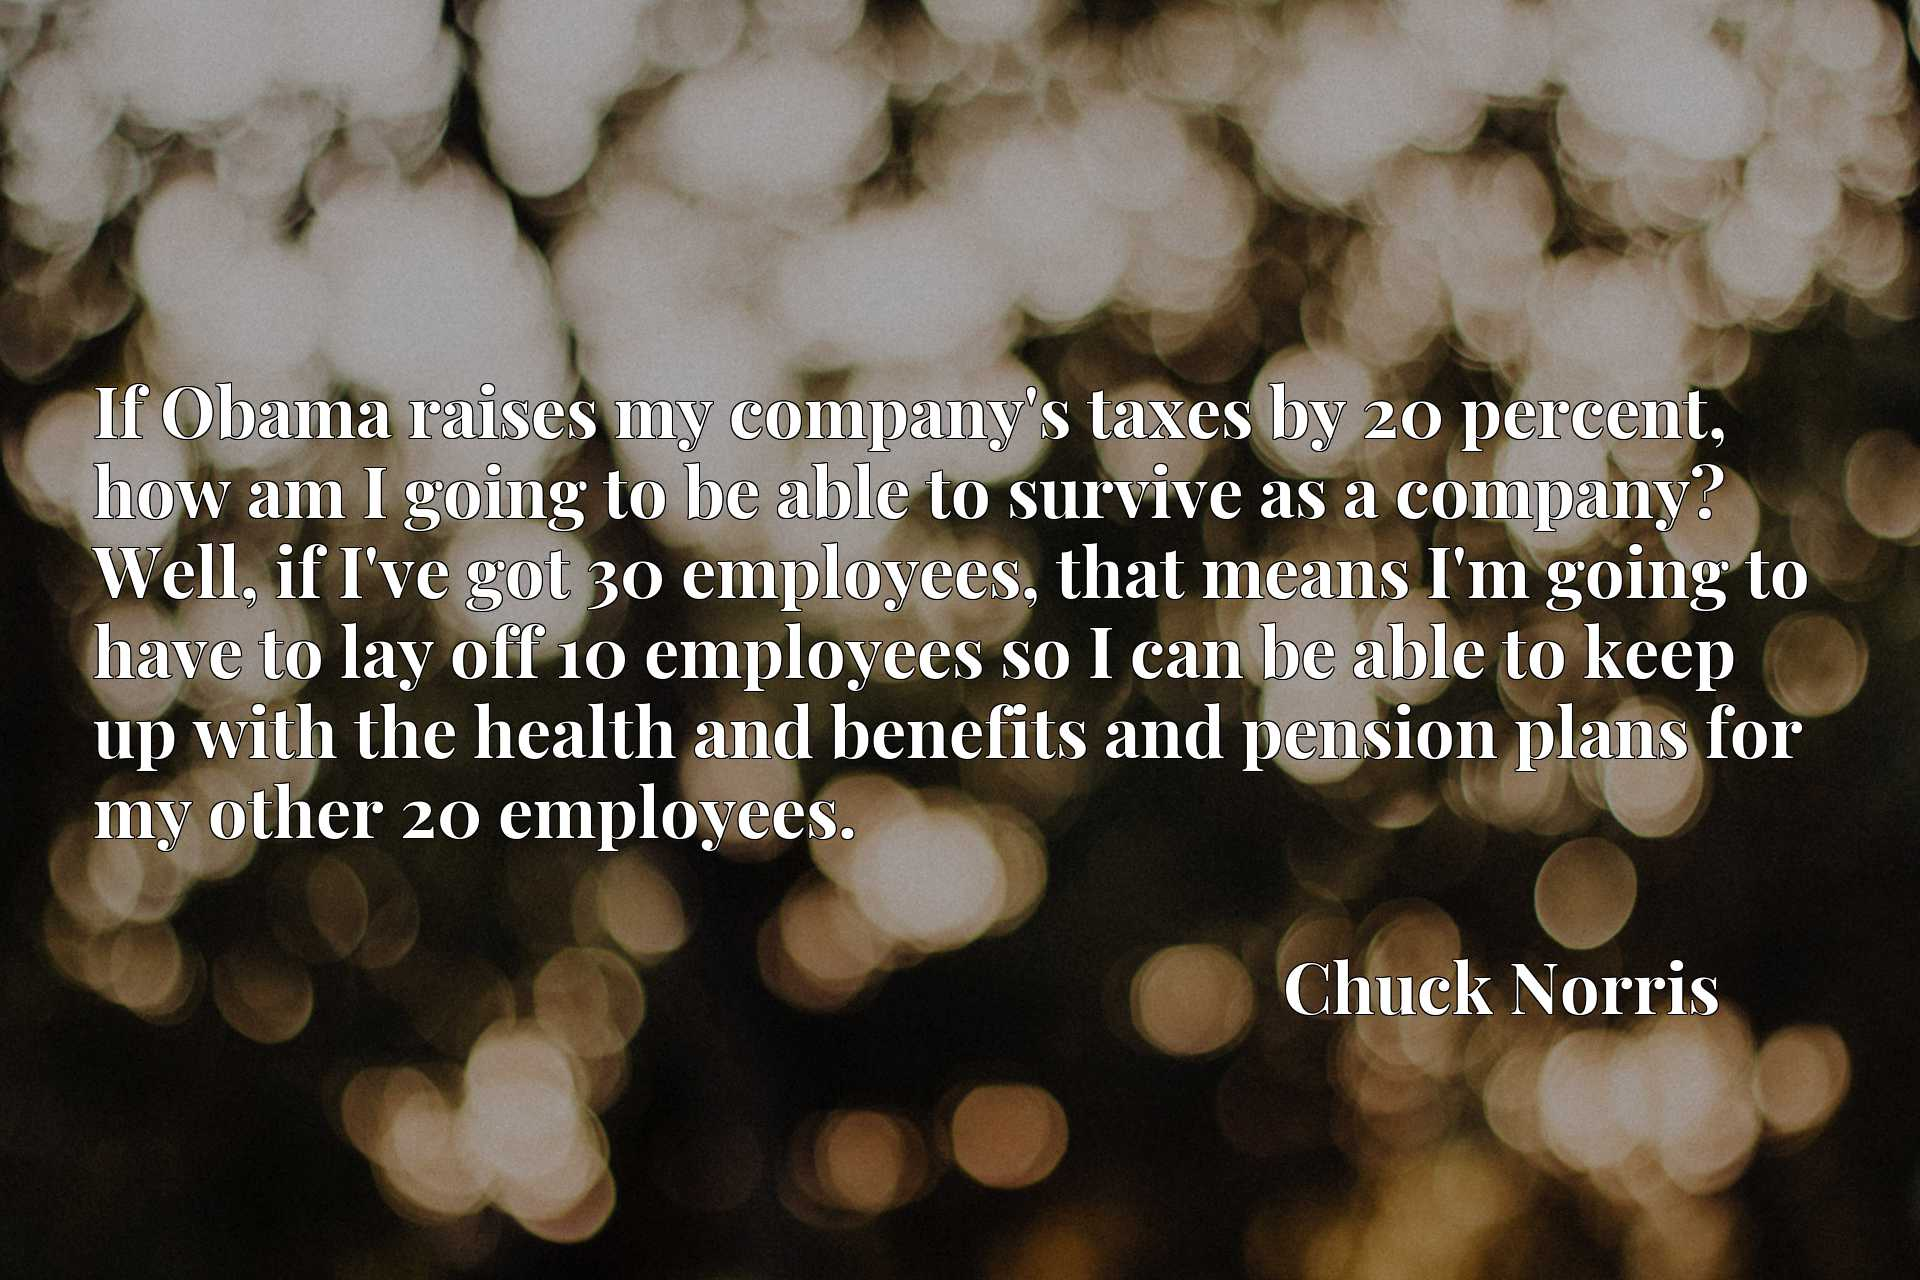 If Obama raises my company's taxes by 20 percent, how am I going to be able to survive as a company? Well, if I've got 30 employees, that means I'm going to have to lay off 10 employees so I can be able to keep up with the health and benefits and pension plans for my other 20 employees.